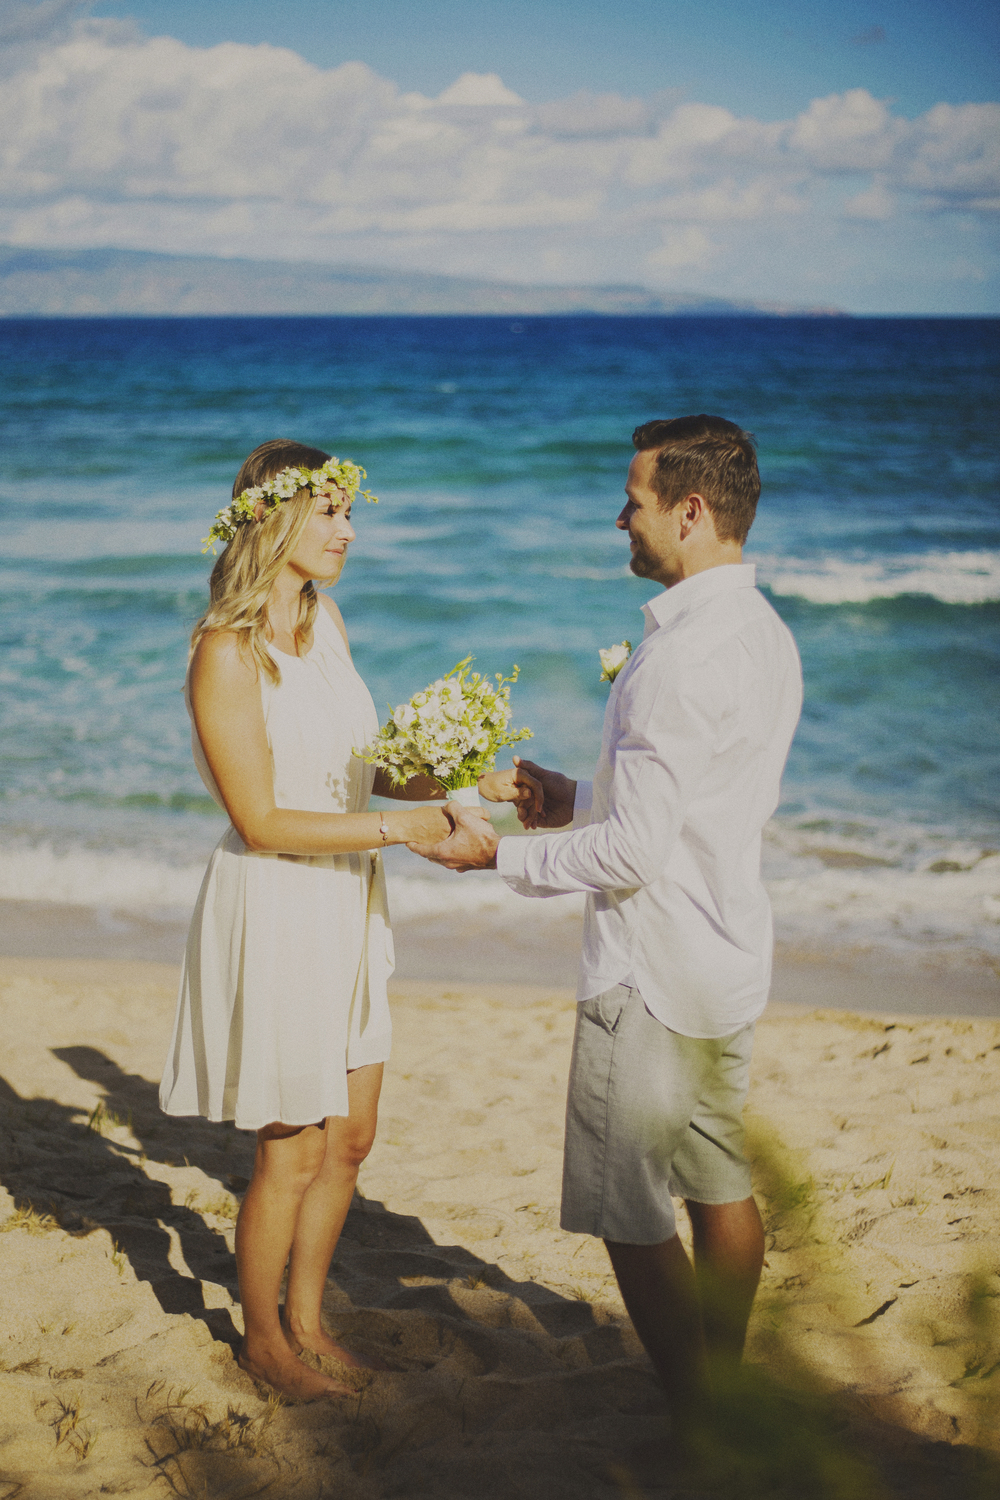 angie-diaz-photography-maui-elopement-oneloa-ironwoods-beach-6.jpg